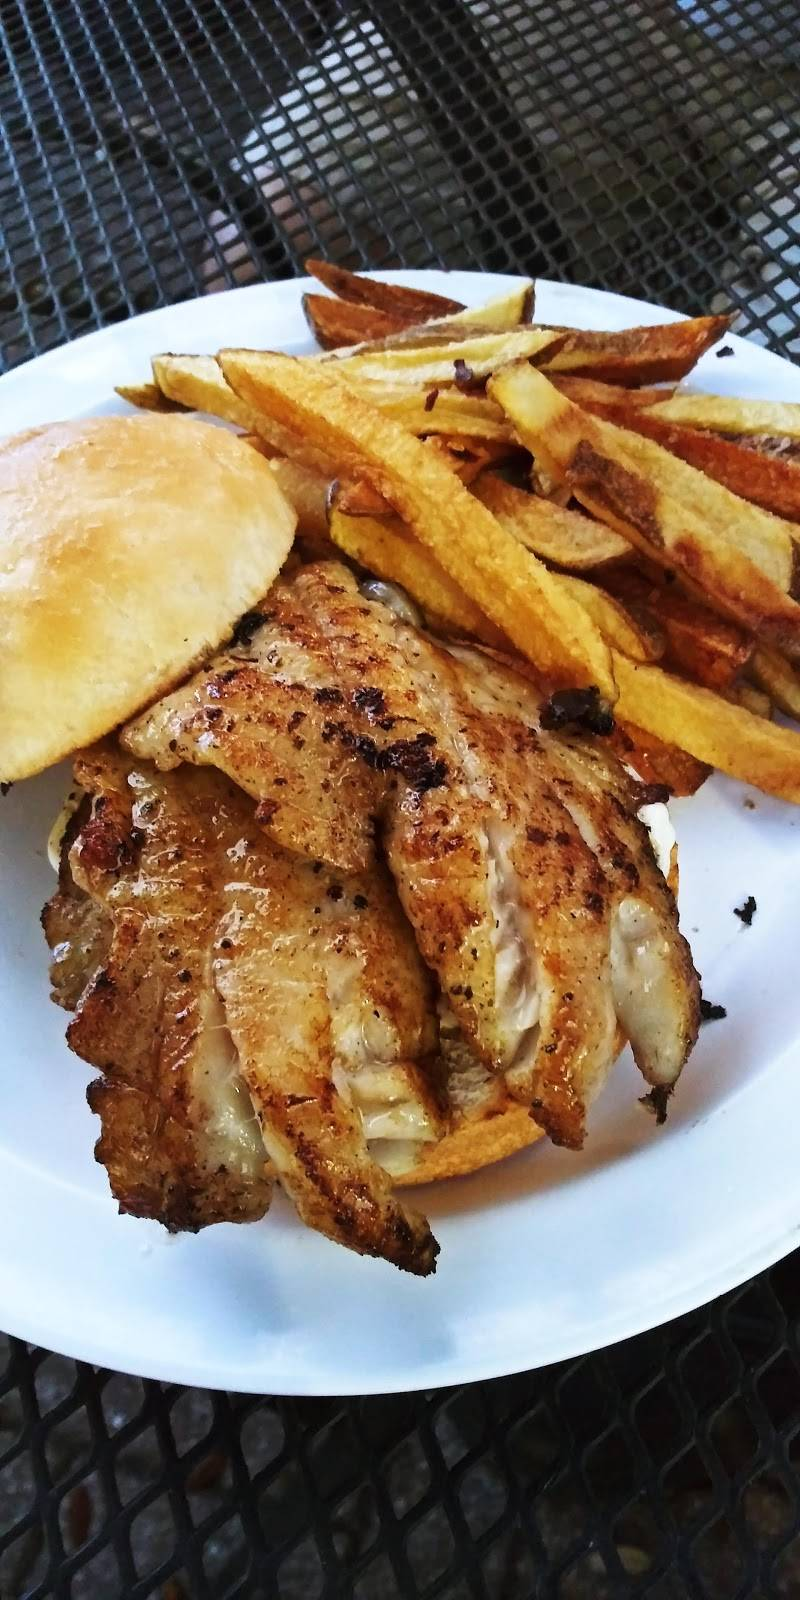 Siris Gourmet Burgers & Pizza | meal delivery | 2813 Beach Blvd S, Gulfport, FL 33707, USA | 7272584949 OR +1 727-258-4949